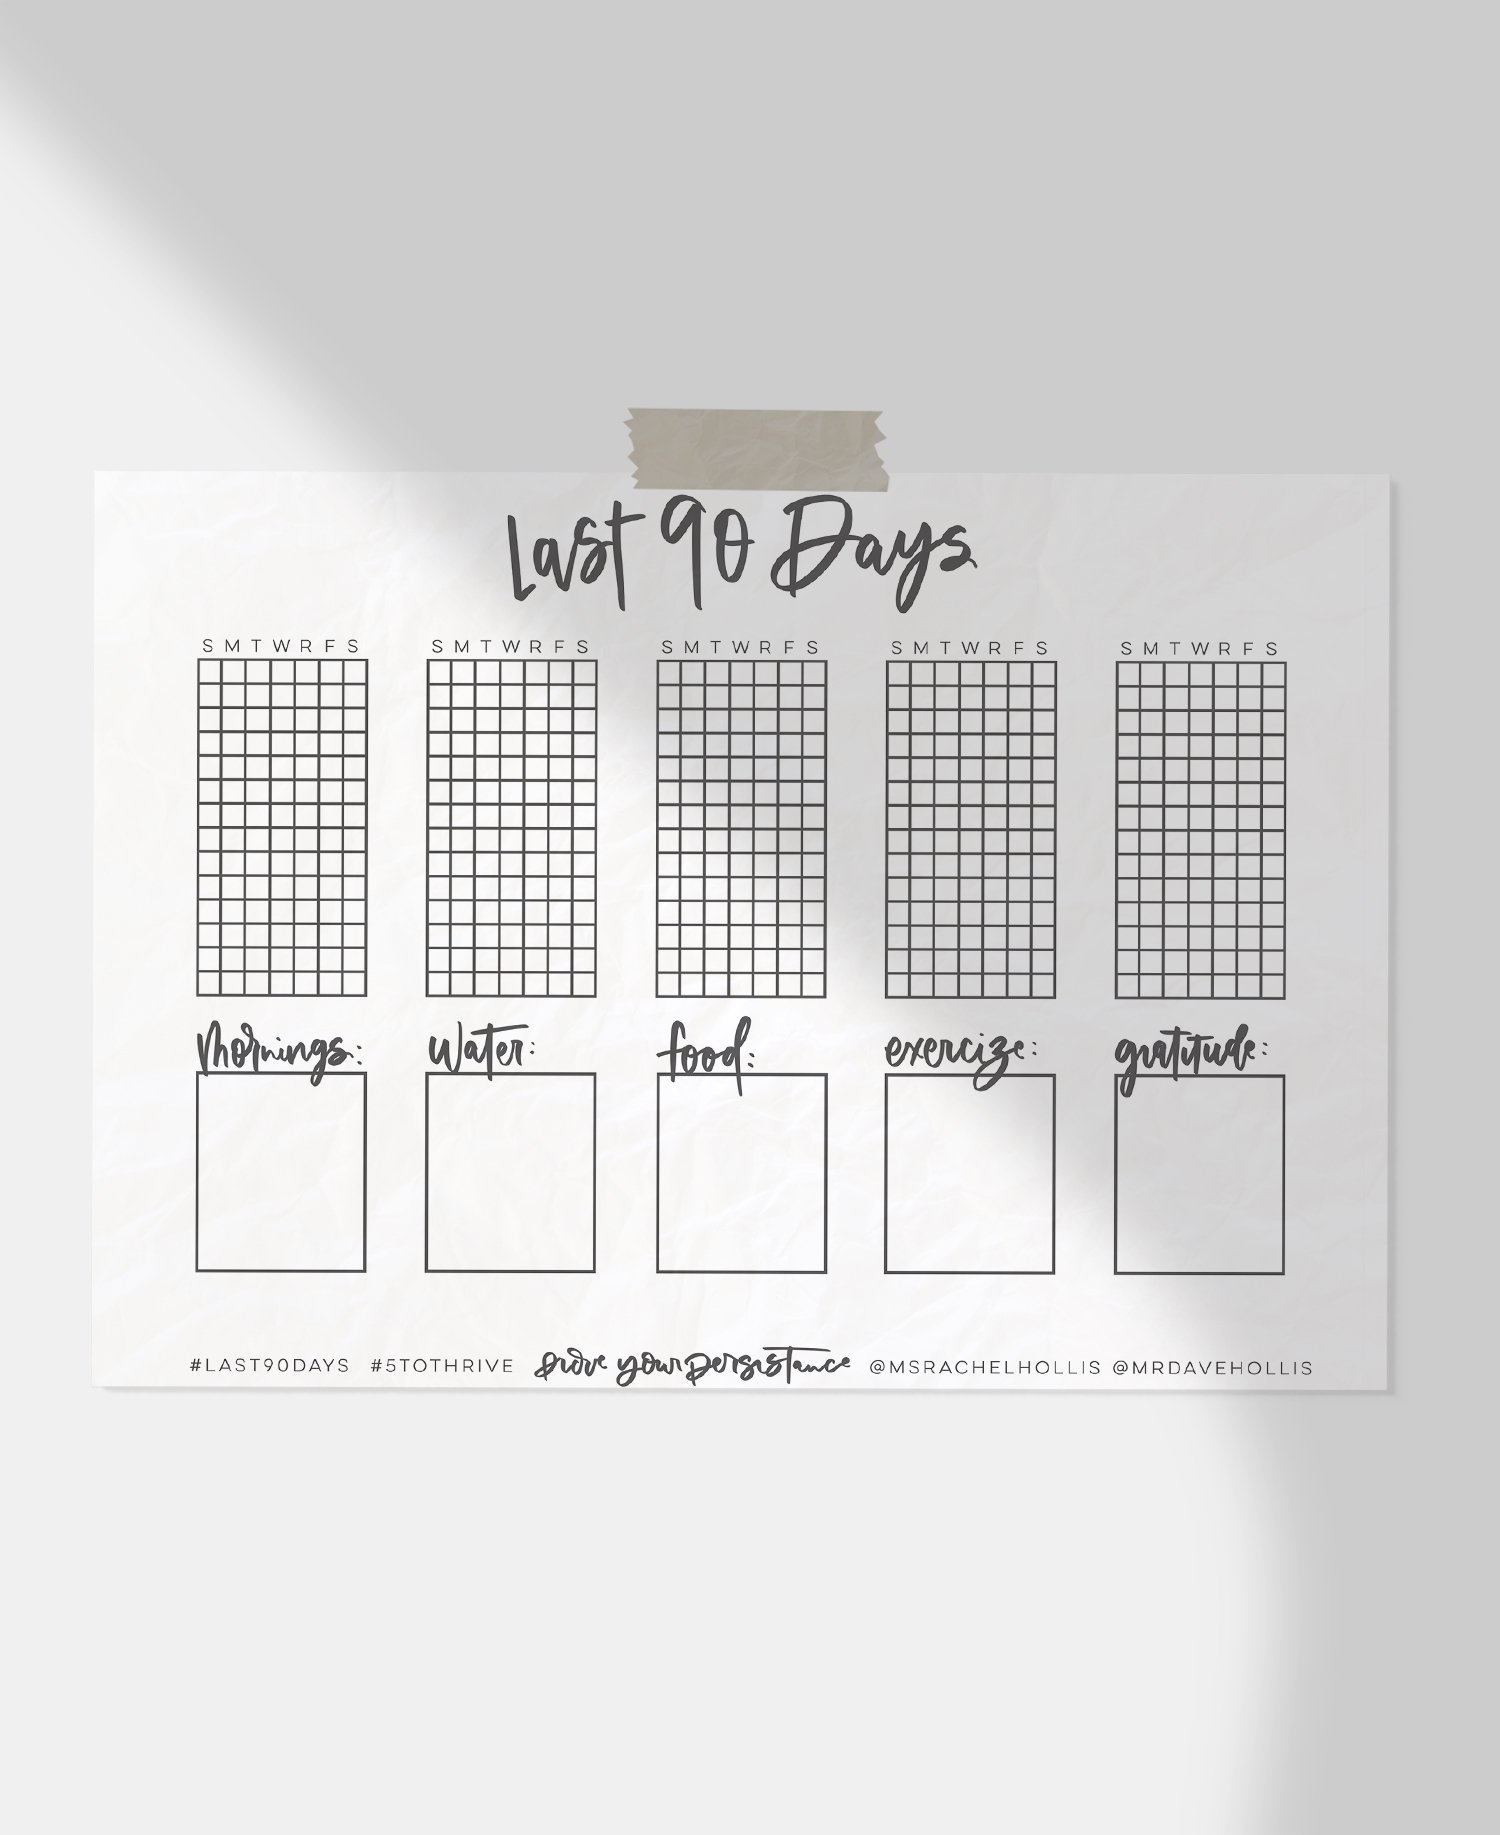 90 Day Calendar Printable | Calendar Template 2020 90 Day Meds Calendar